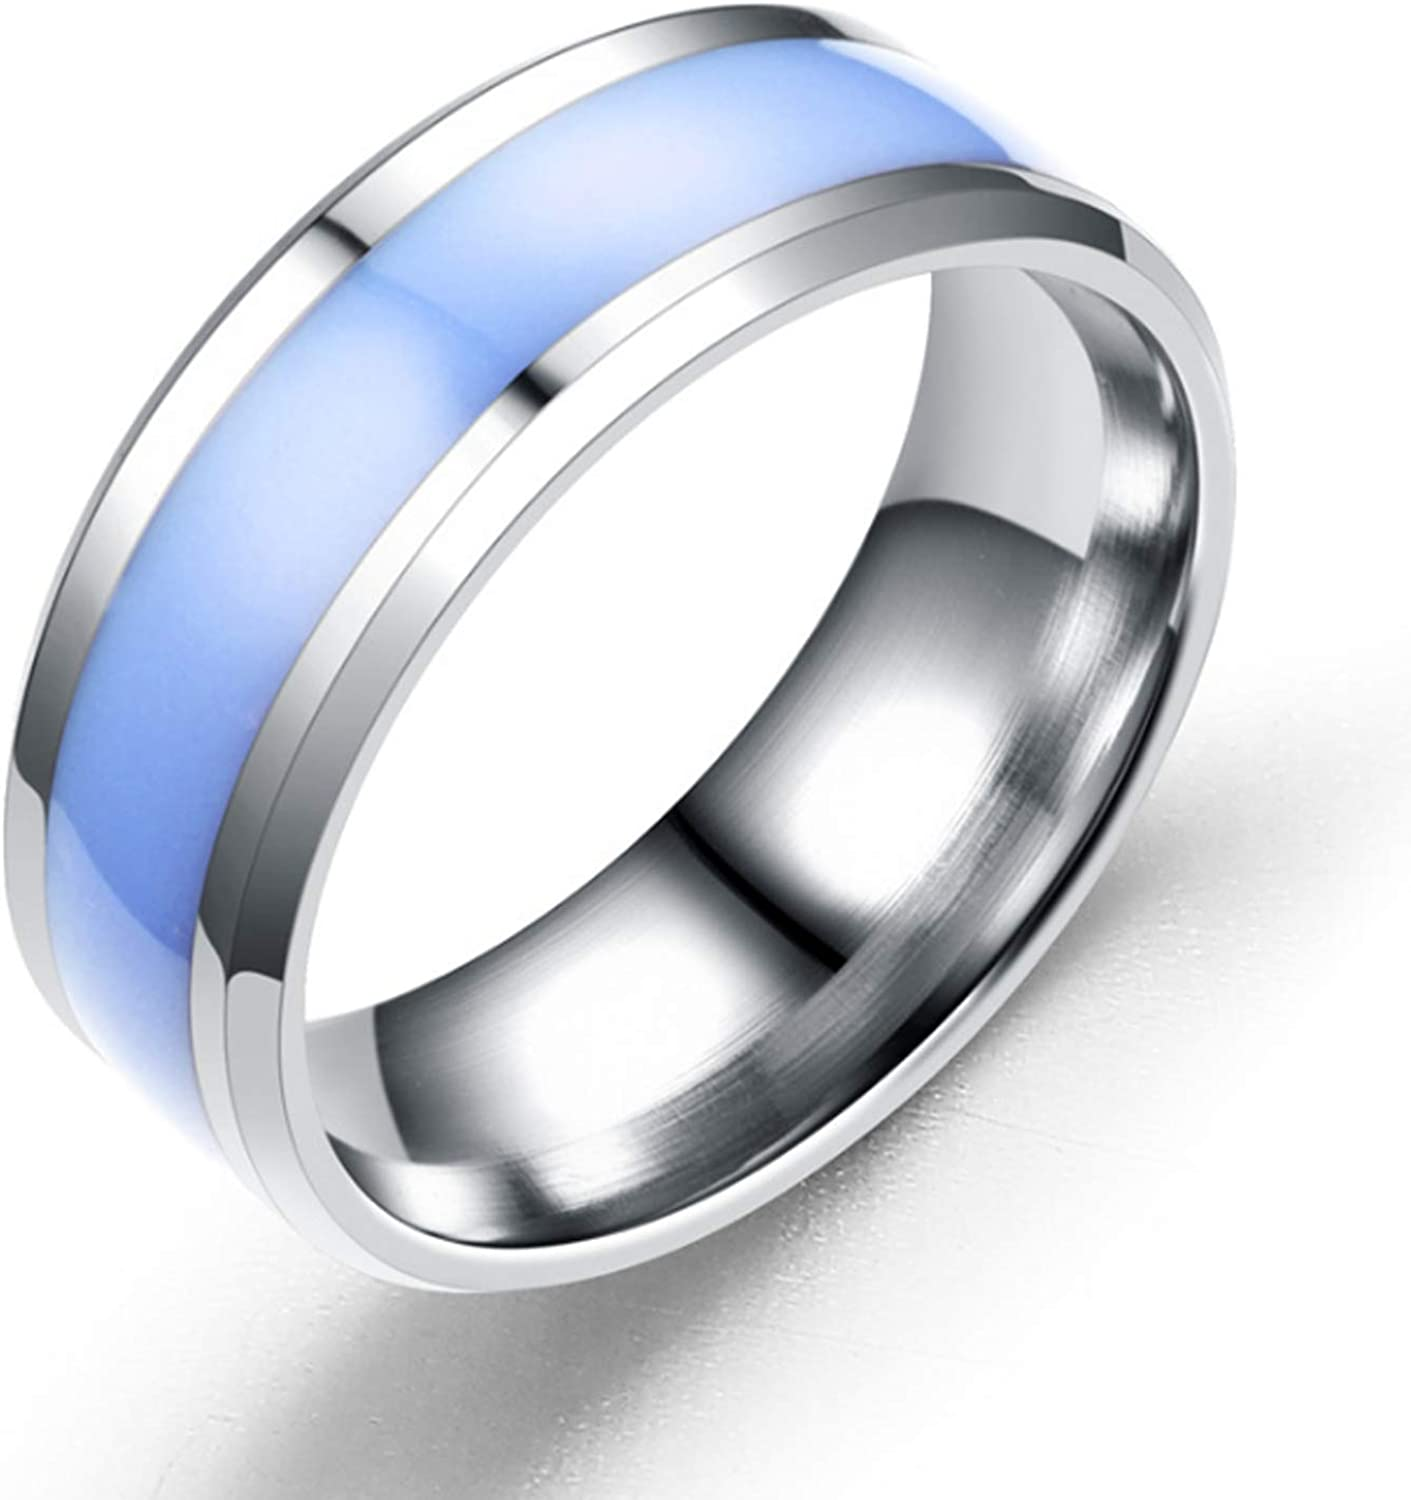 Castal Jewelry 8MM Silver New popularity Stainless High Great interest Steel Ring Bev Polished